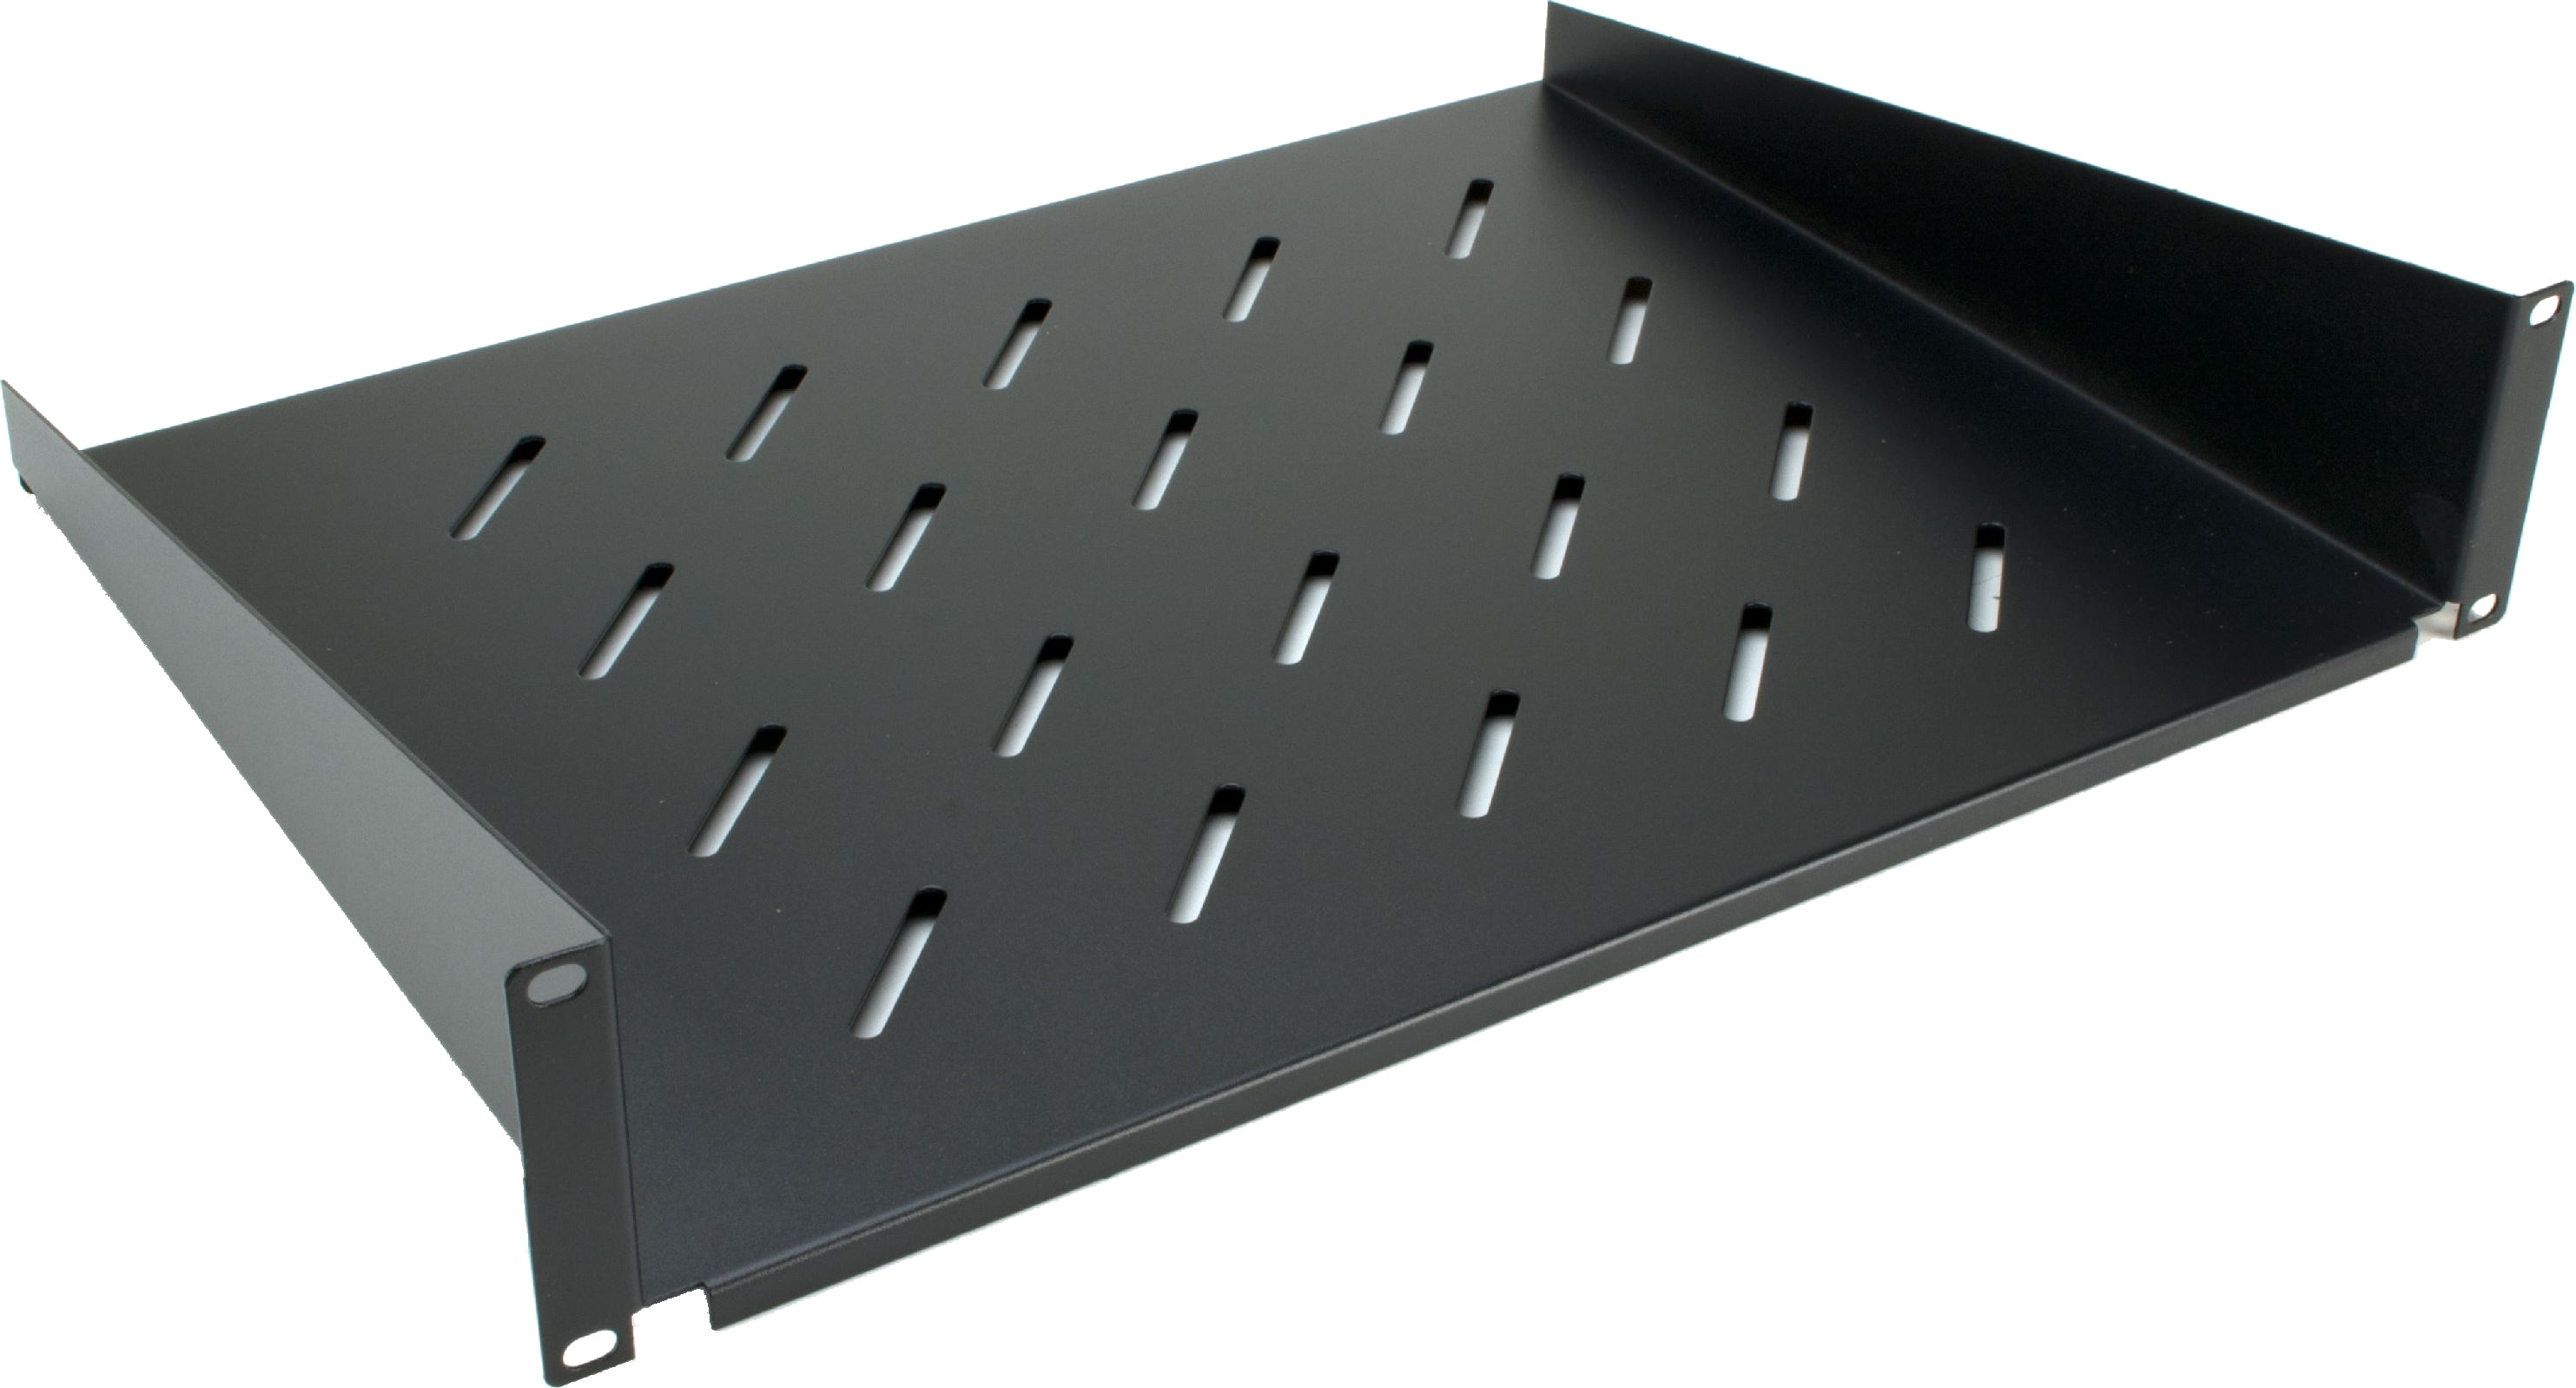 07-6307-40 2U Universal Rack Mount Shelf - 40cm